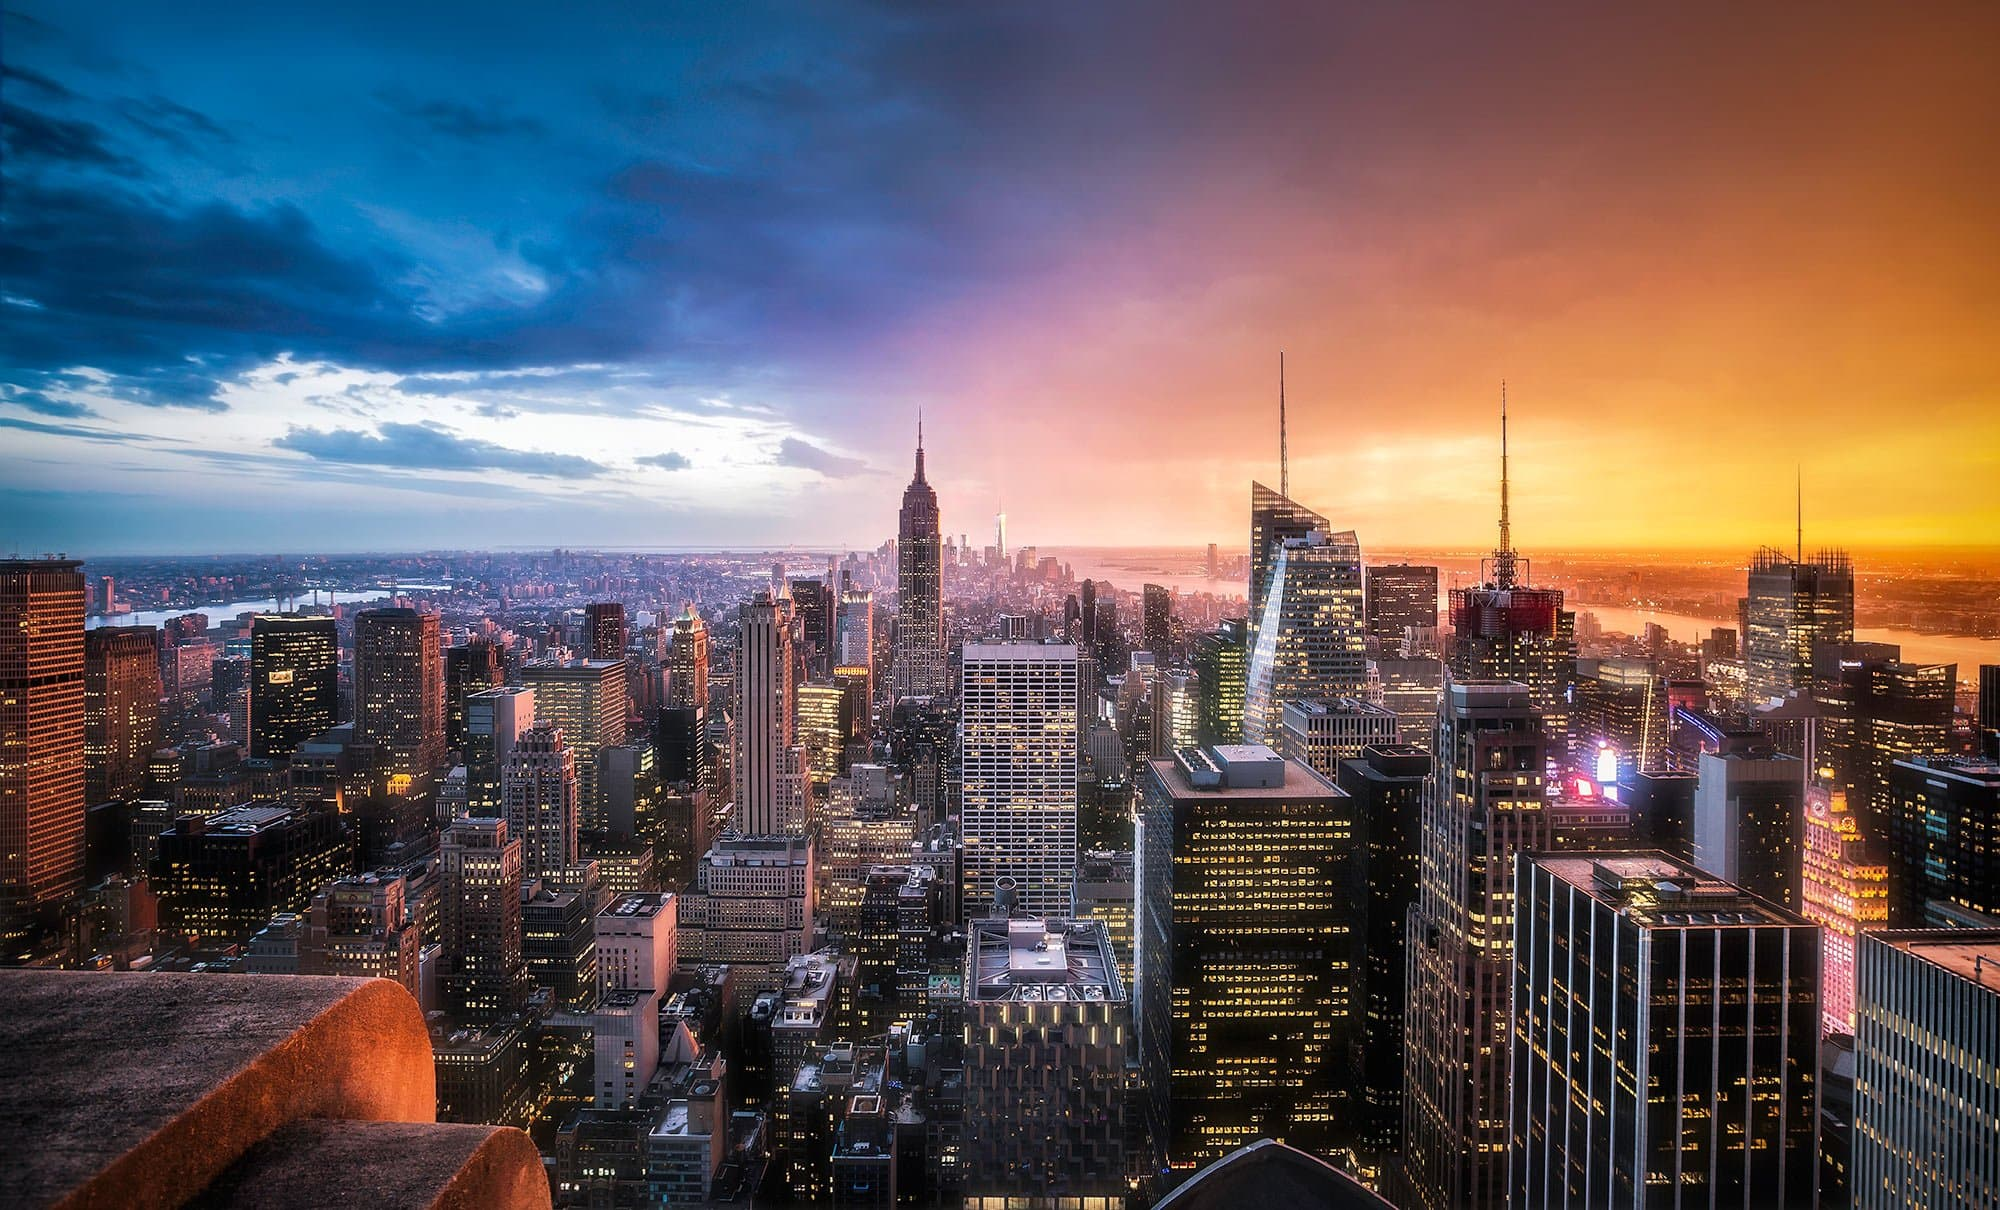 HDR Photography - Day Vs Night In New York City